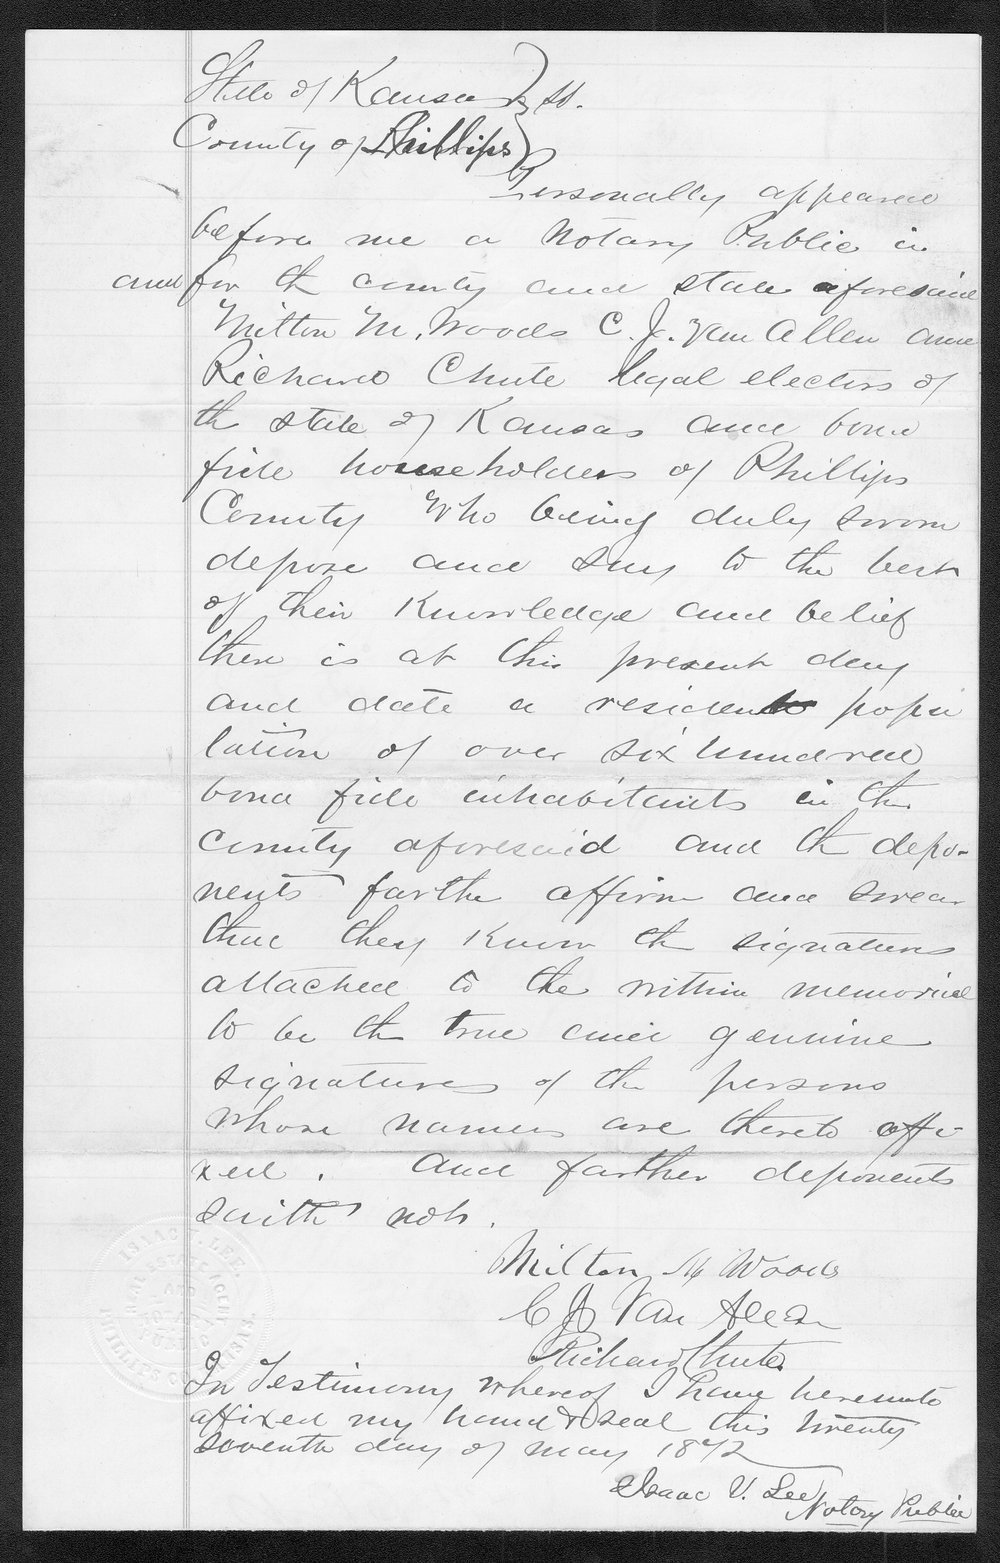 Phillips County organization records - 9